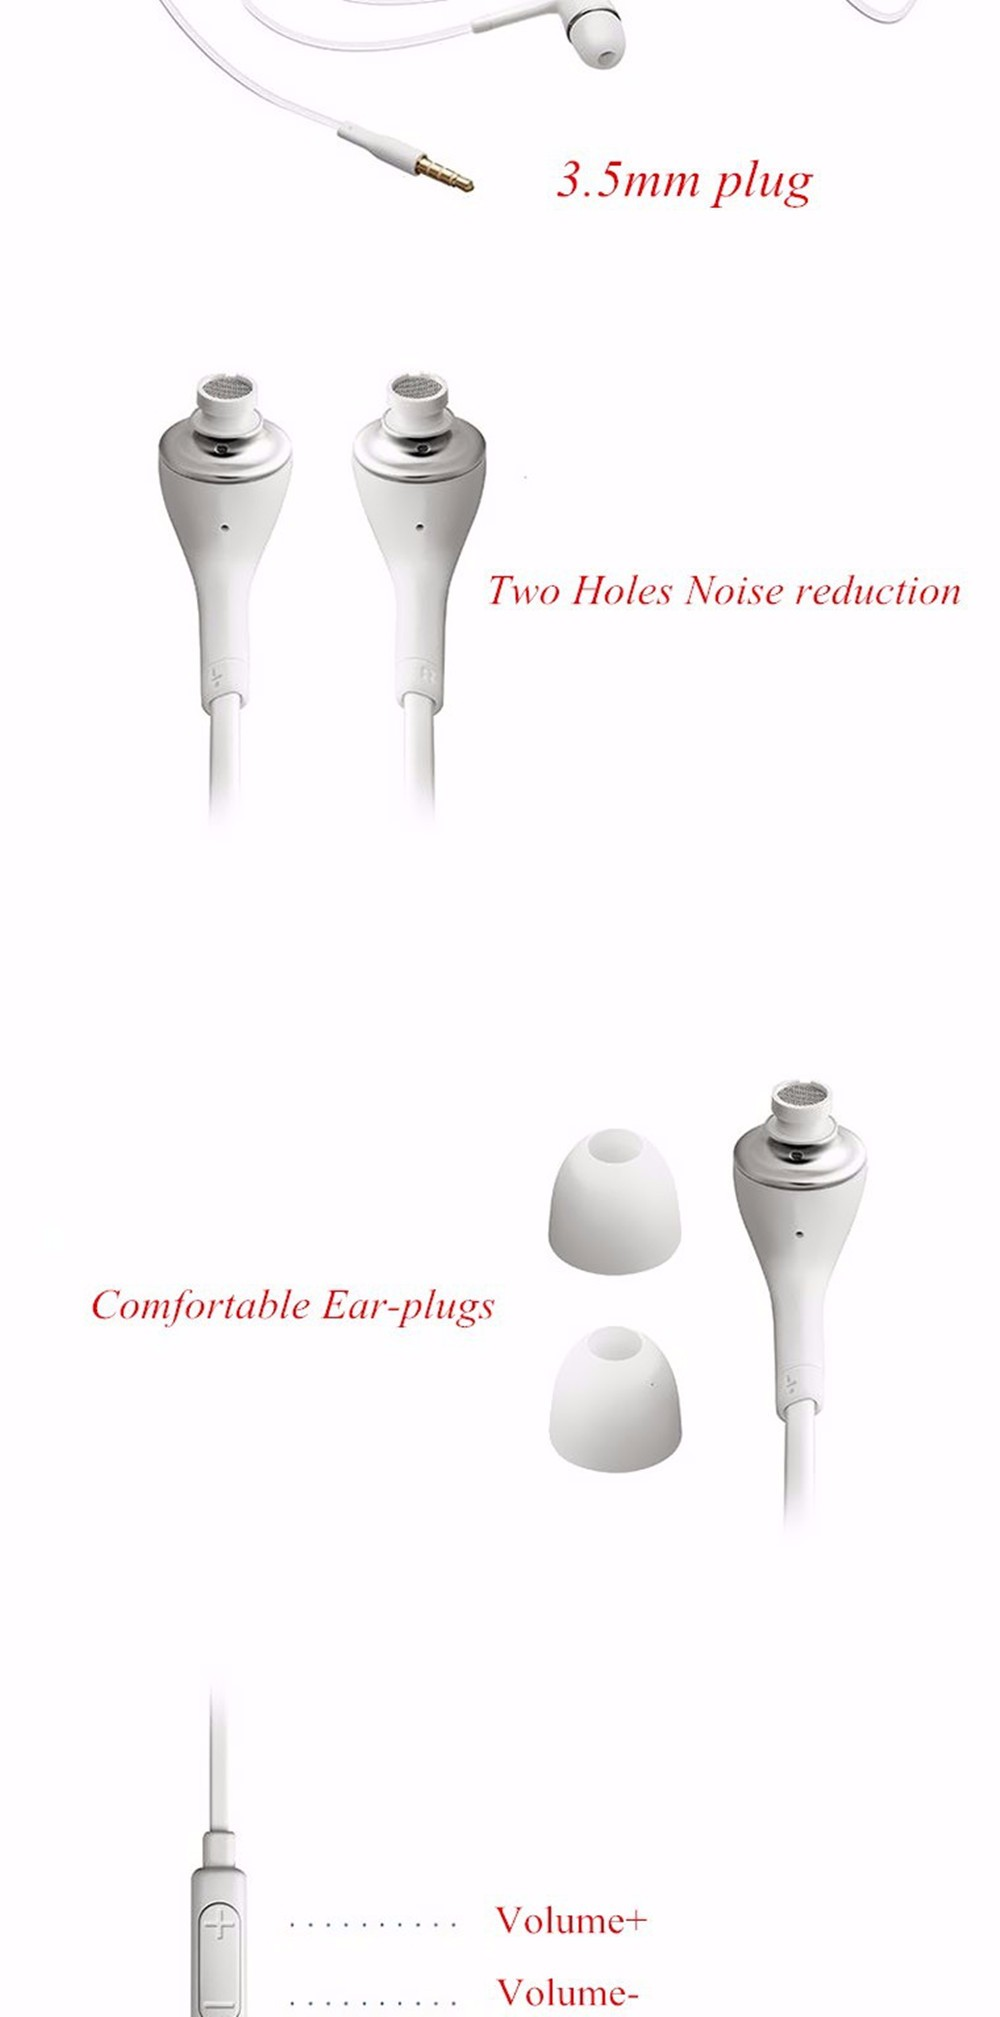 100% New White Earphone With Volume&Mic For Samsung Galaxy S2 S3 SIII Galaxy Note Galaxy Note2 flat cable earphone